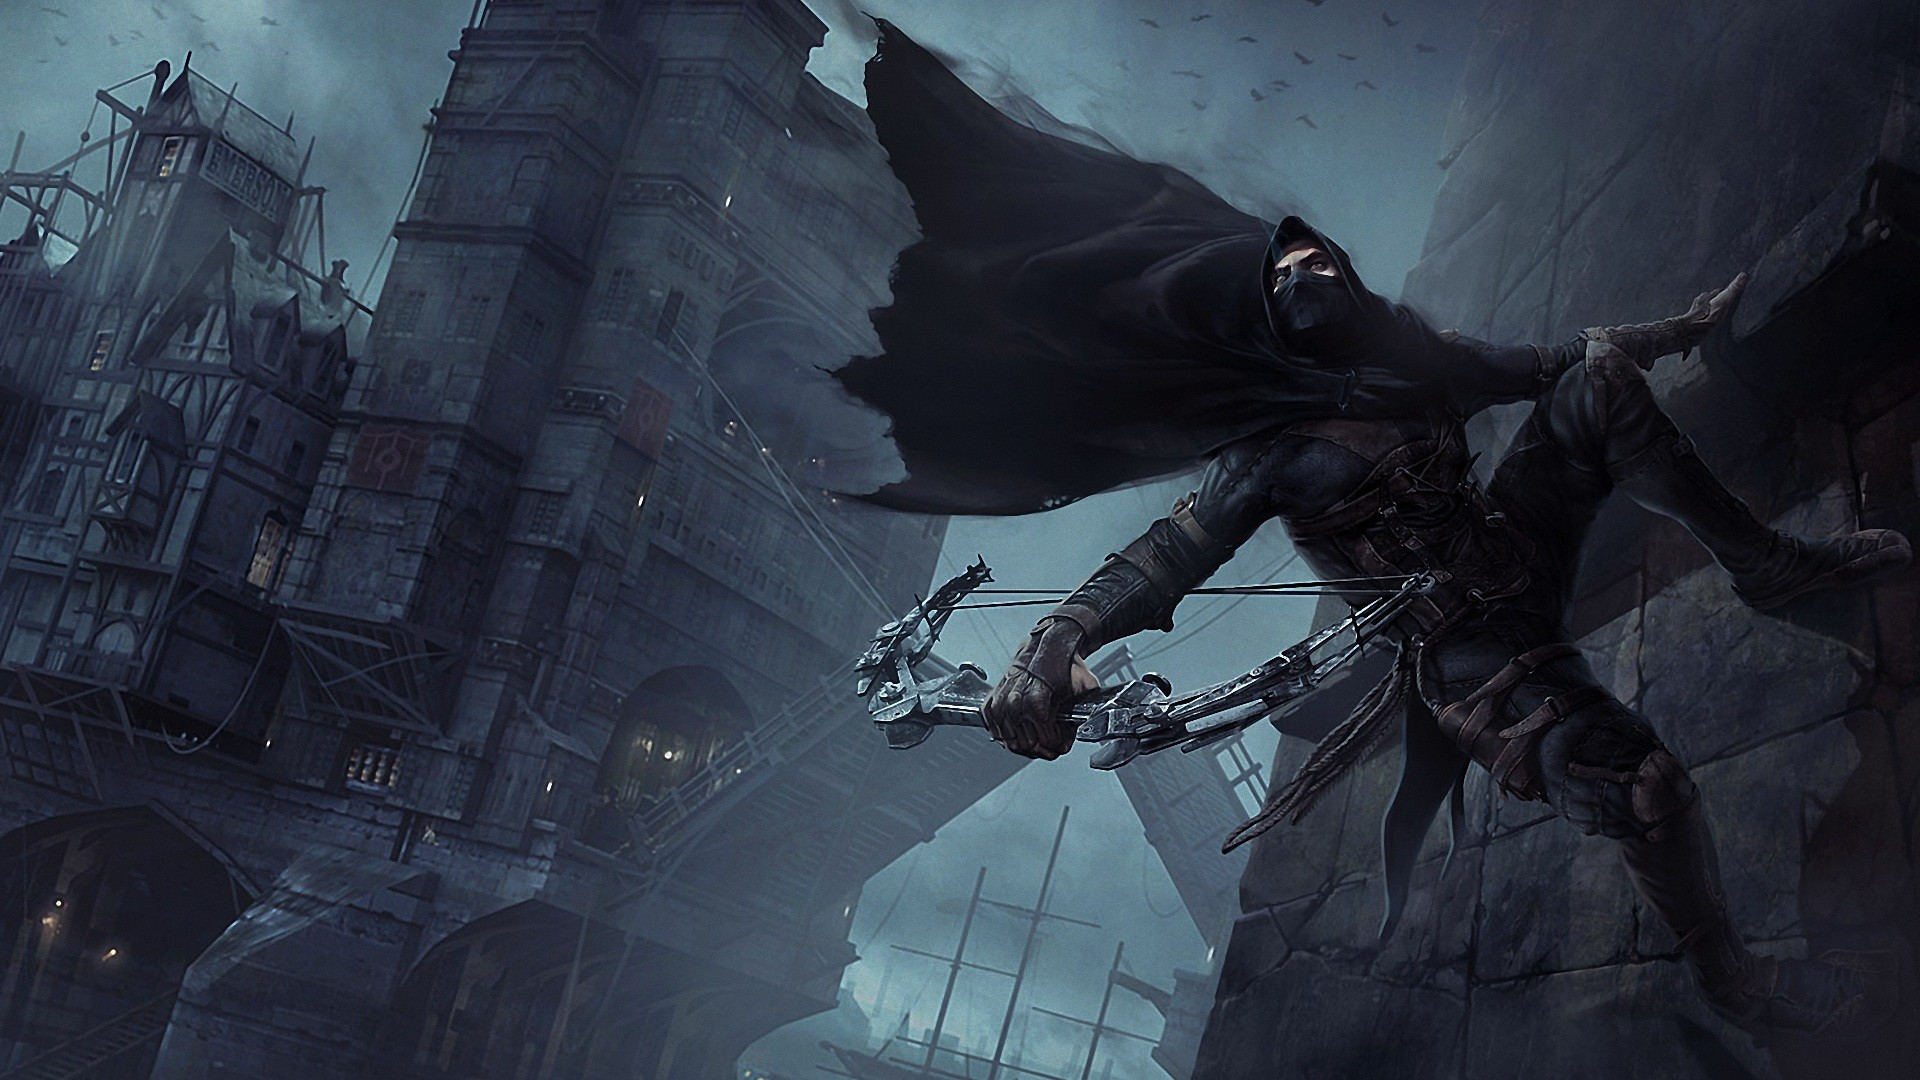 Thief game art